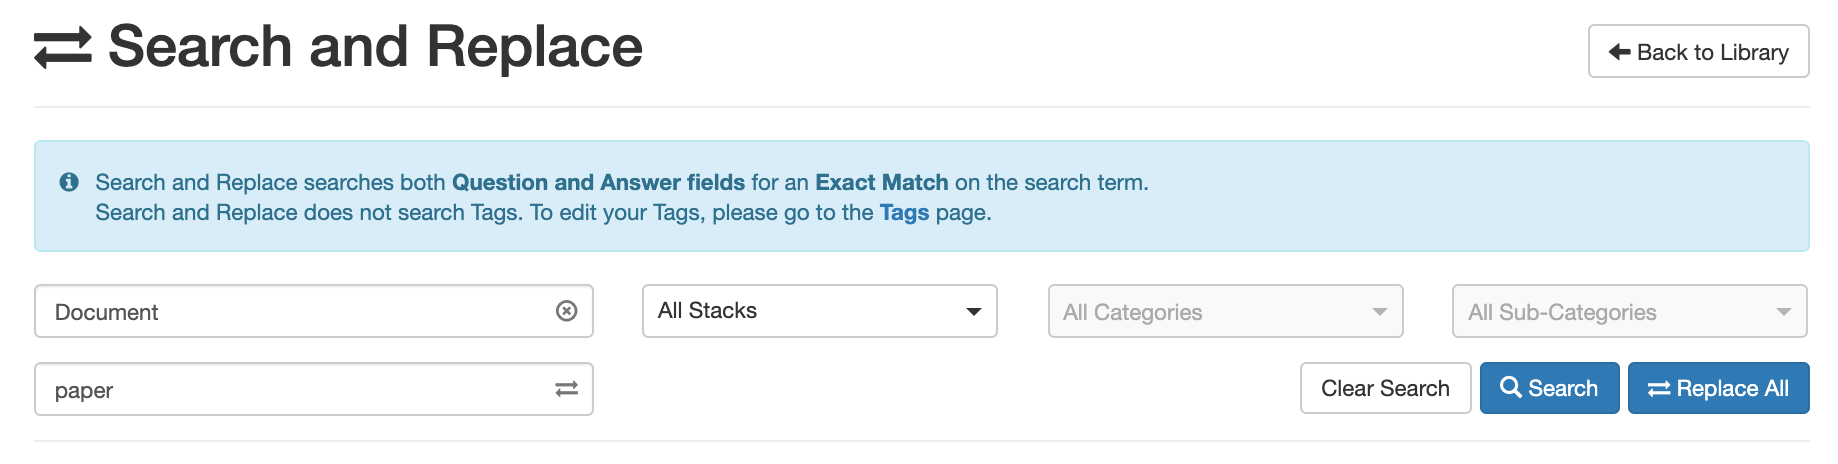 A_screenshot_of_the_Search_and_Replace_page_with_both_Search_and_Replace_fields_populated.png